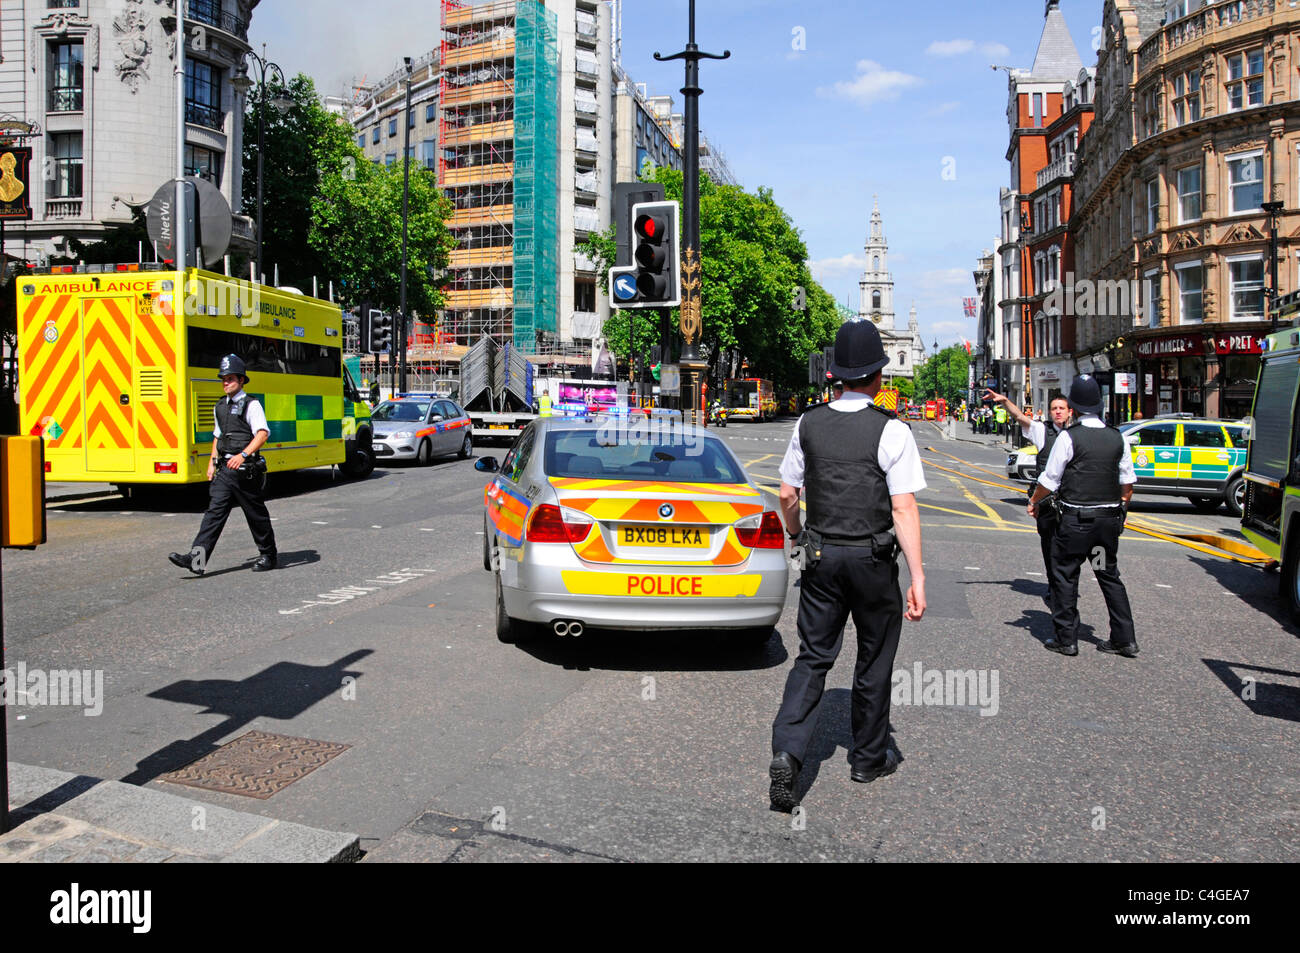 Police vehicles in The Strand with major fire incident in Aldwych beyond - Stock Image